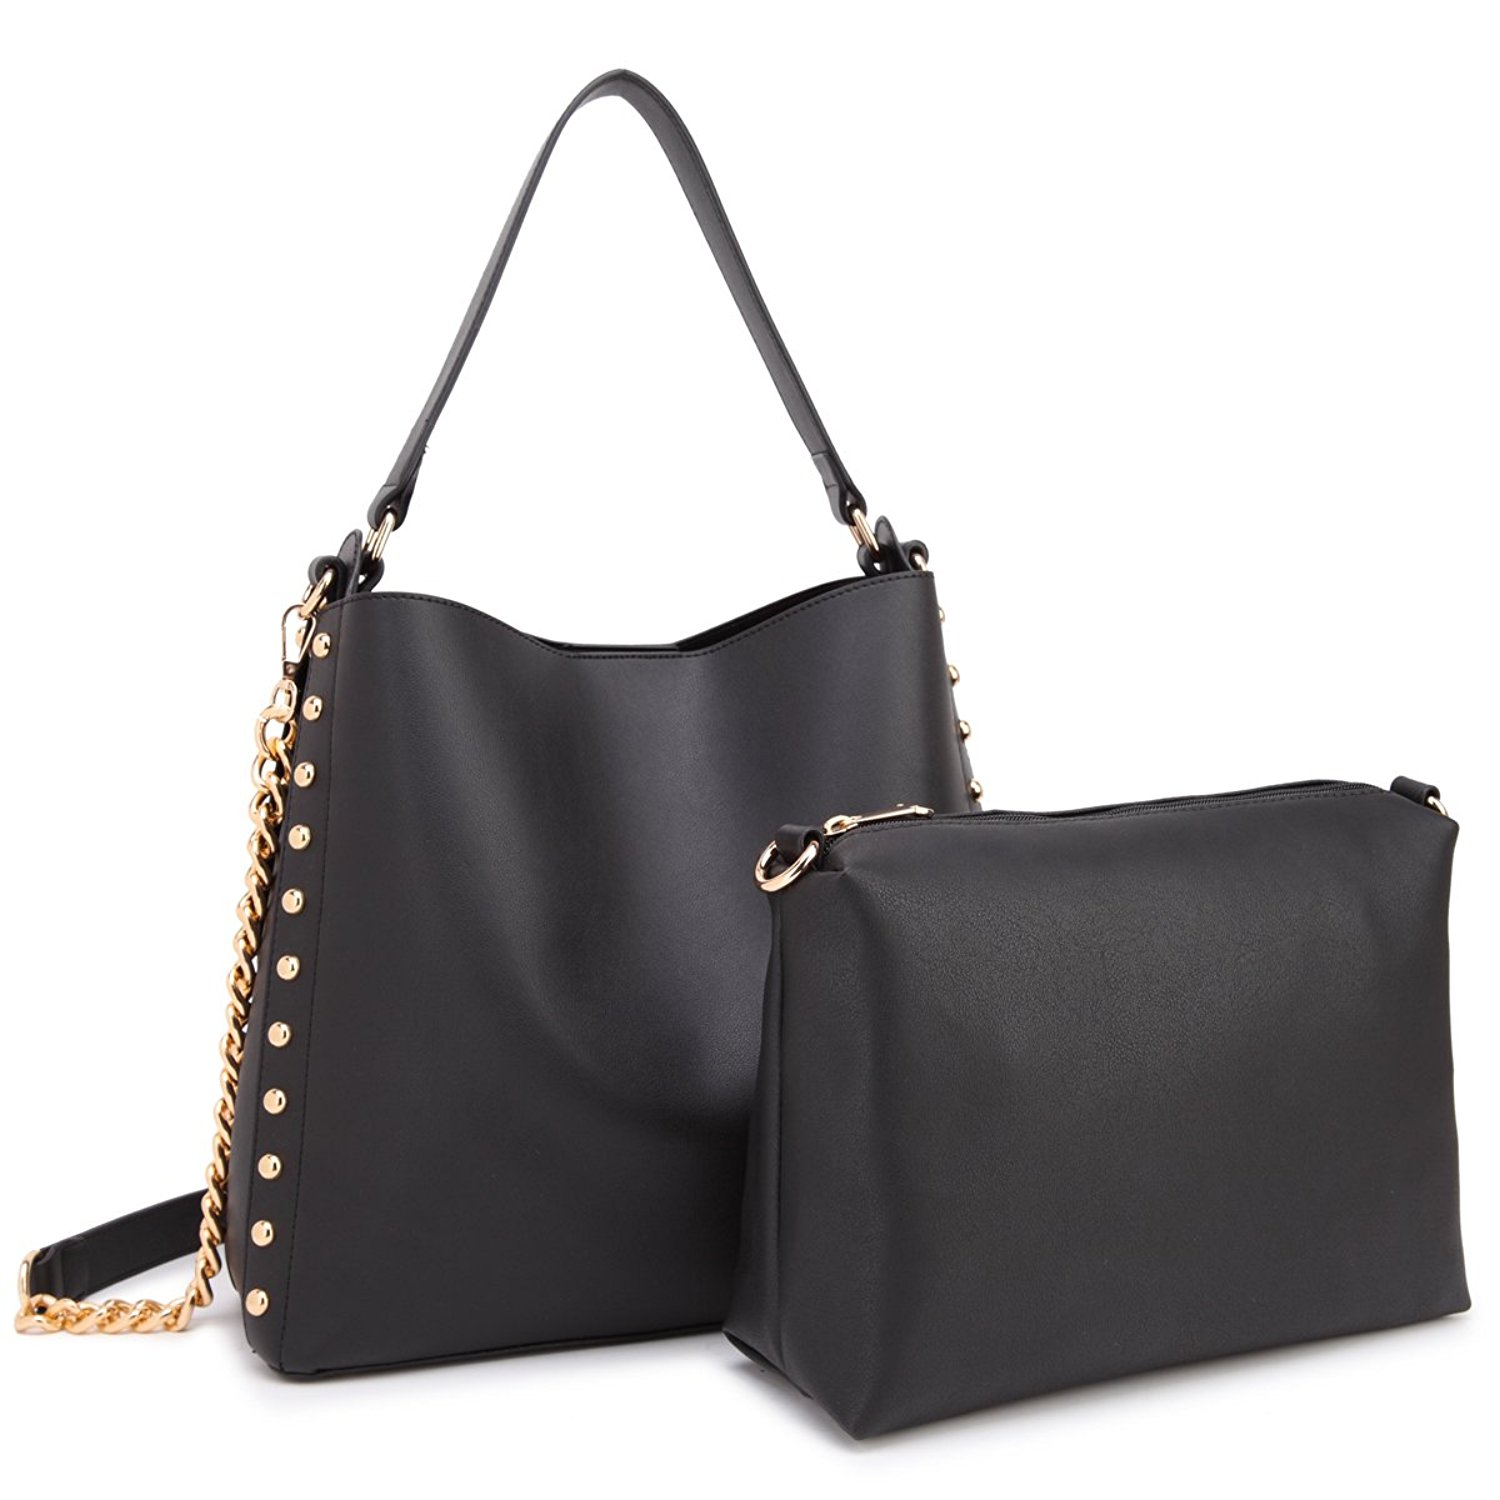 adef71882080 Get Quotations · Women Satchel Purses and Handbags Ladies Hobo Bags  Shoulder Purses with Liner Crossbody Pouch Bag